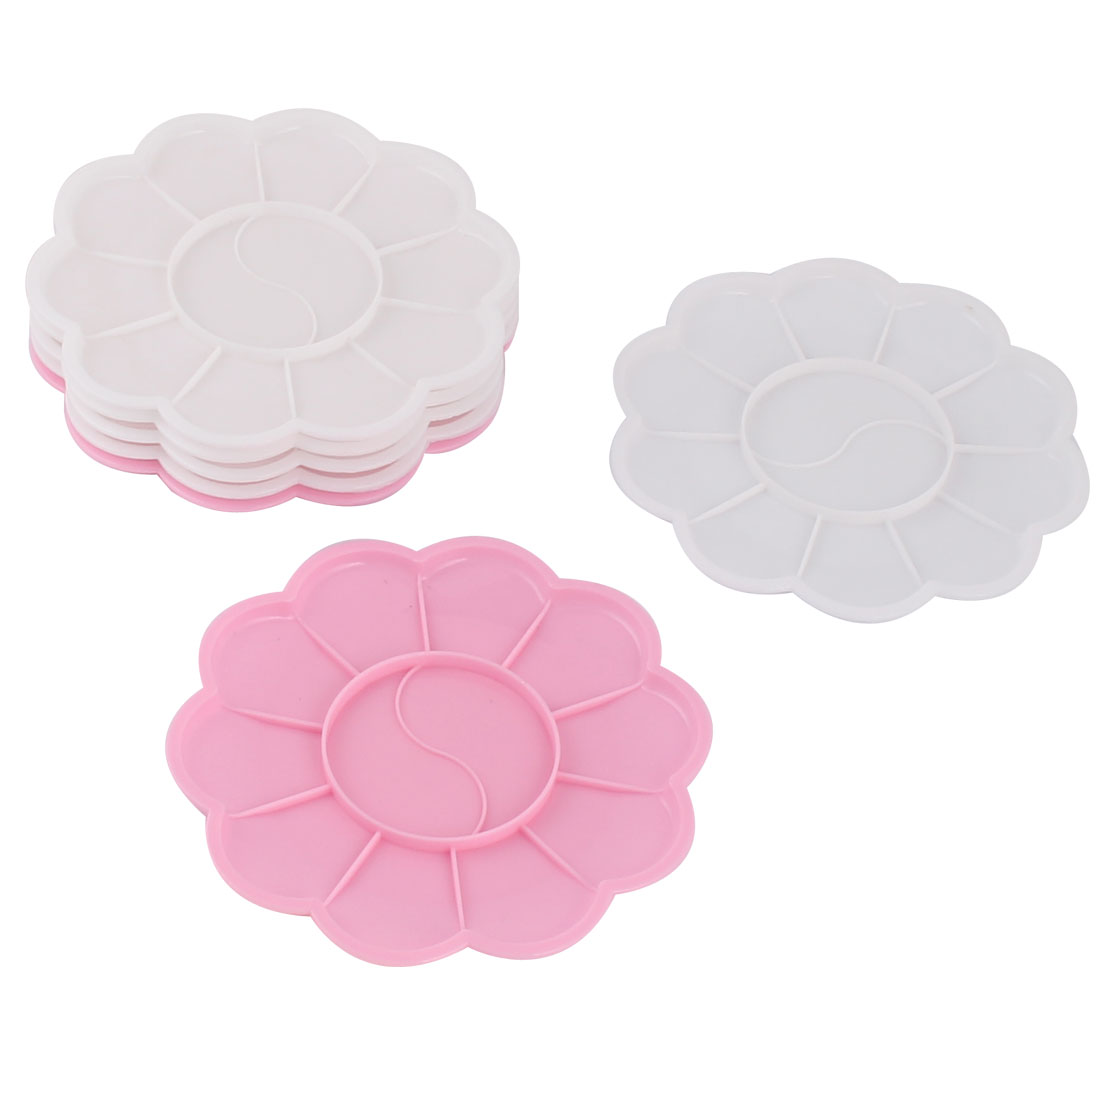 School Student Petal Shaped Watercolor Paint Tray White Pink 12 Compartments 7pcs